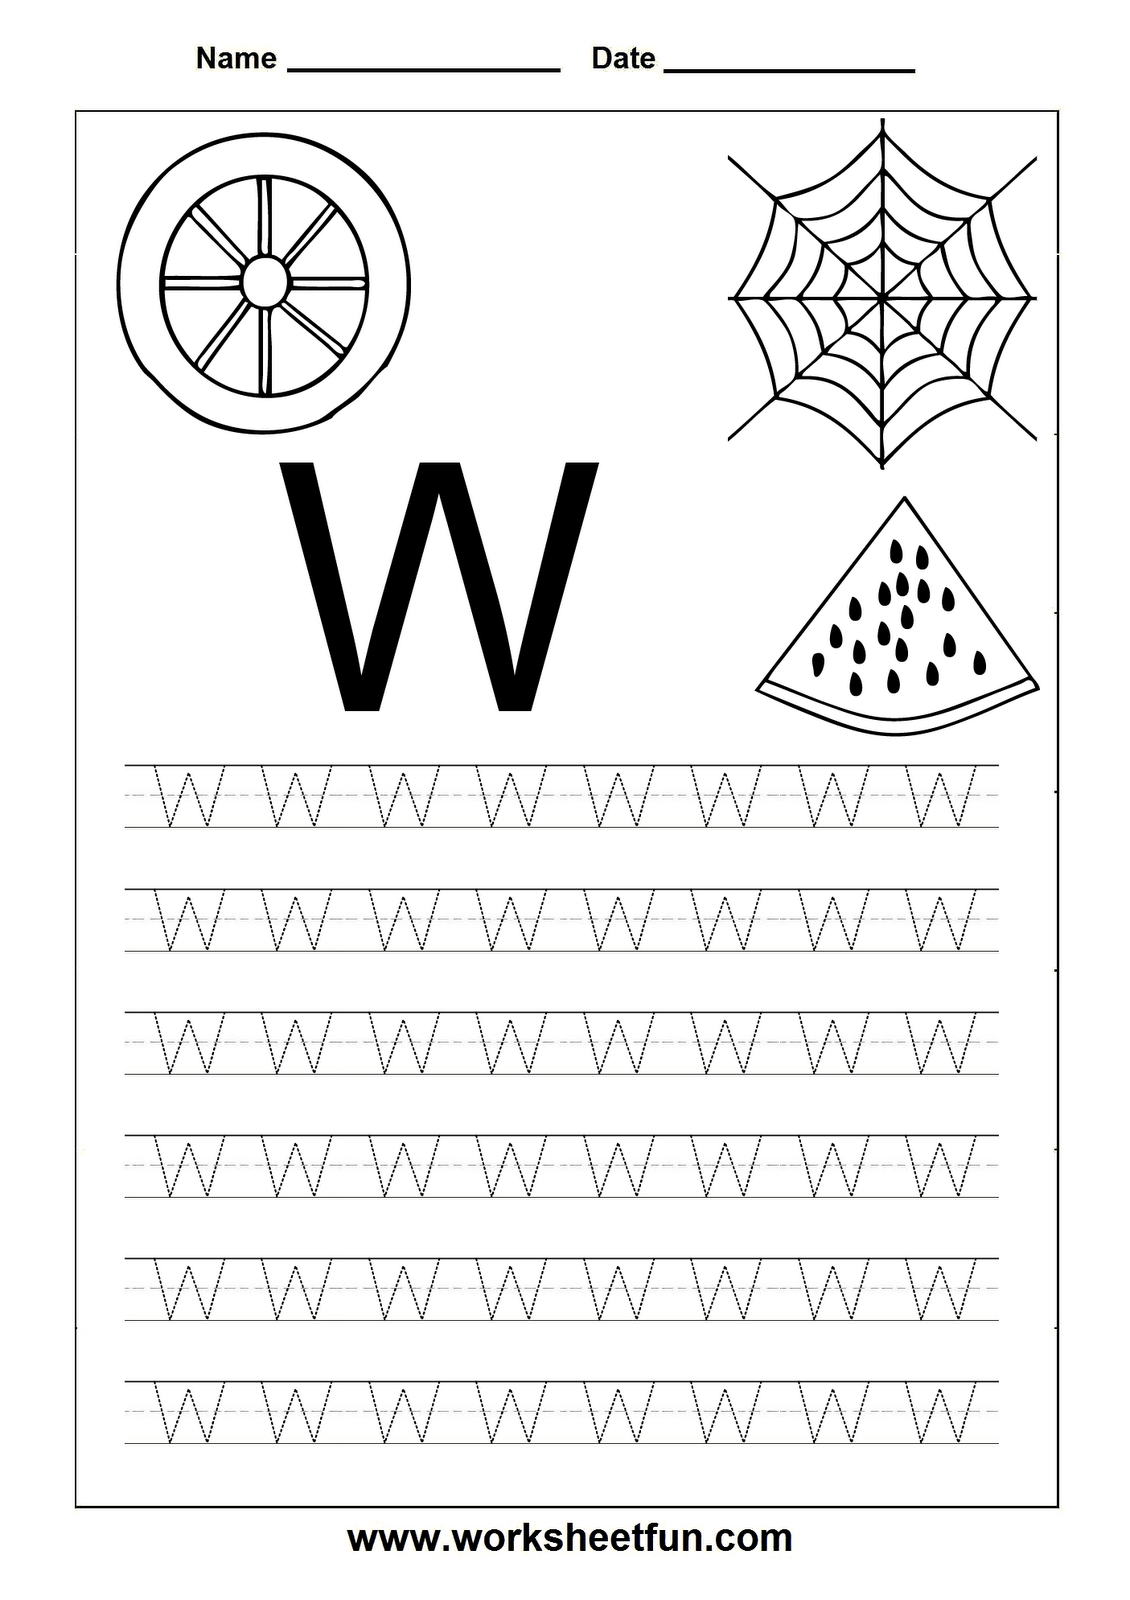 Free Printable Worksheets Letter Tracing Worksheets For Kindergarten